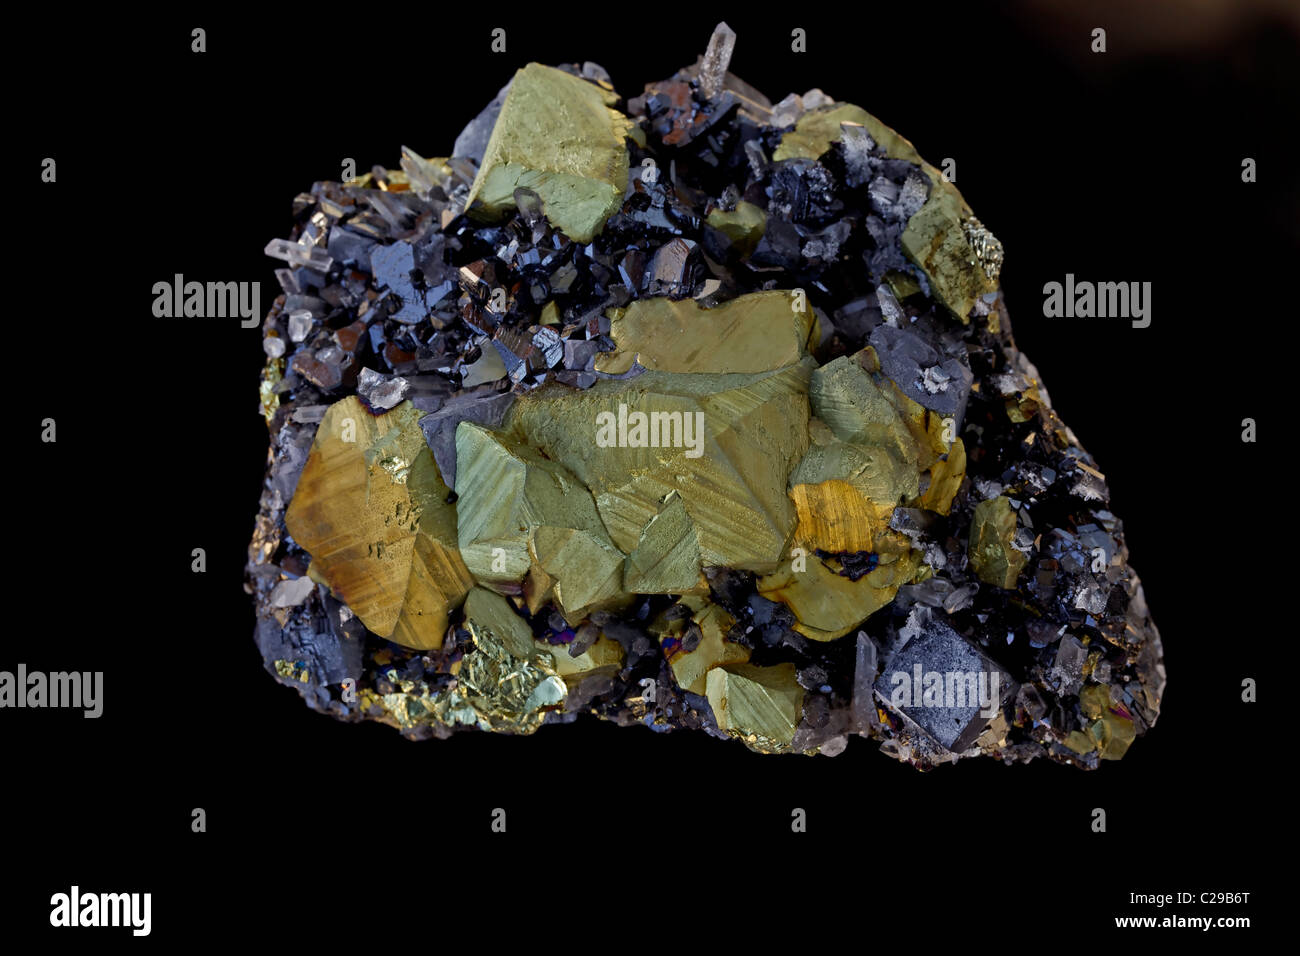 Chalcopyrite (Golden) with galena and sphalerite - The major ore of copper - Very important economic mineral - Stock Image